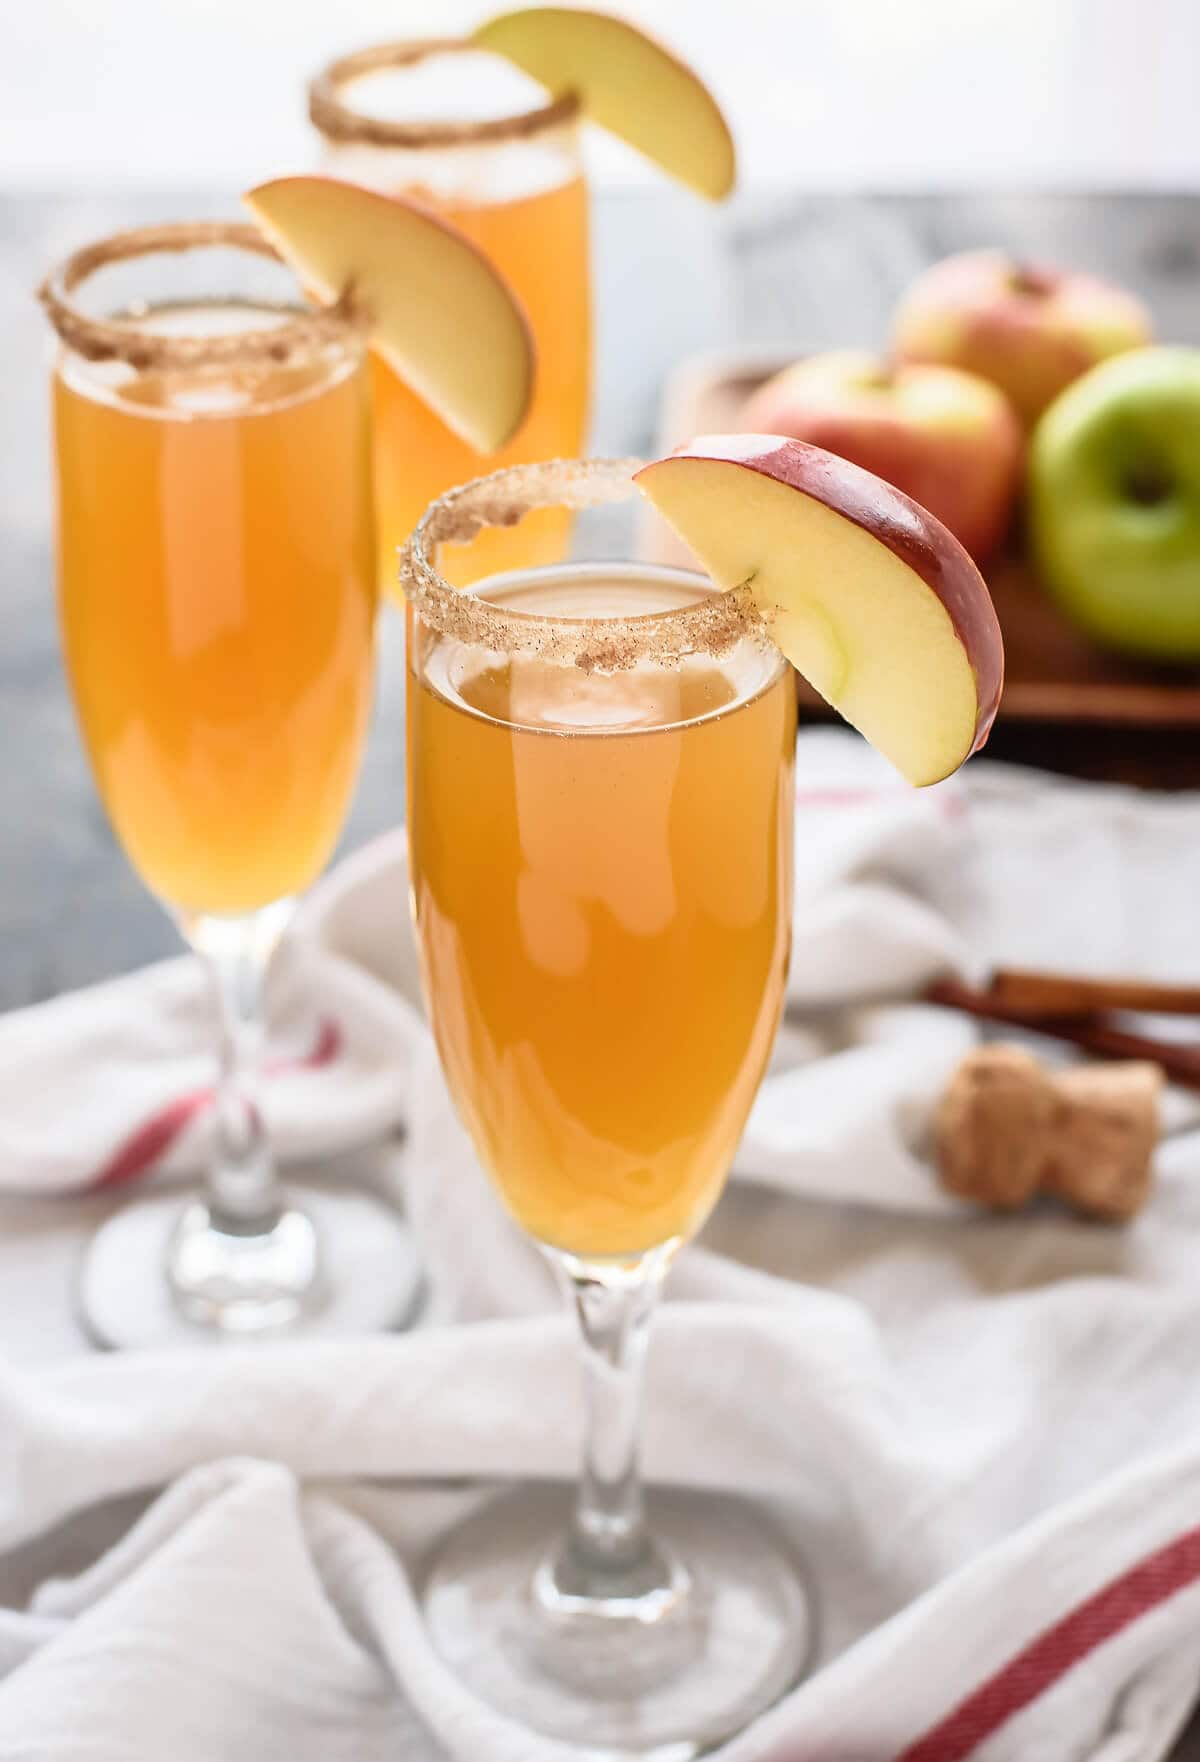 You'll be finding every excuse to break out the bubbly and make these beautiful Apple Cider Champagne Cocktails. Only 3 ingredients and absolutely delicious.